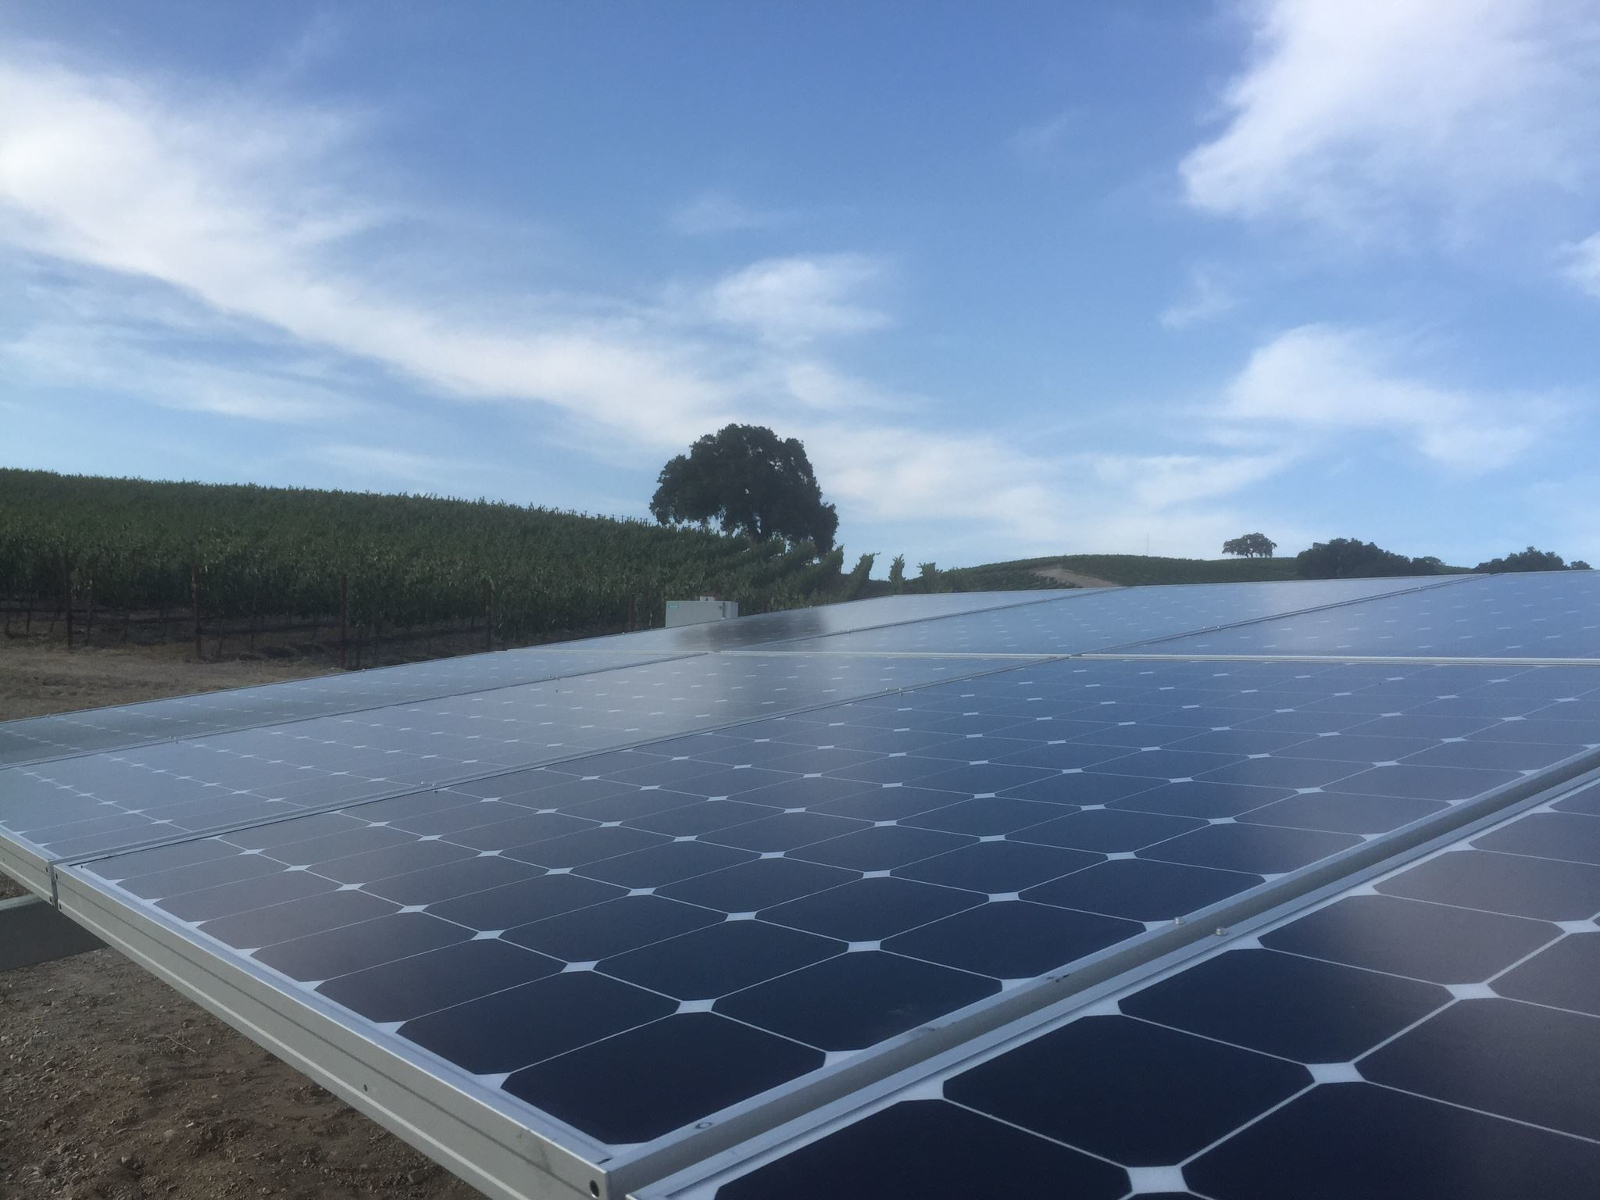 SunPower Corp is expecting to sell further assets and increase its loans in 2019 to avert bankruptcy due to looming liquidity issues as the company expects to remain loss making next year, while current net losses in the first nine months of 2018 have reached US$745.3 million.  Image: SunPower